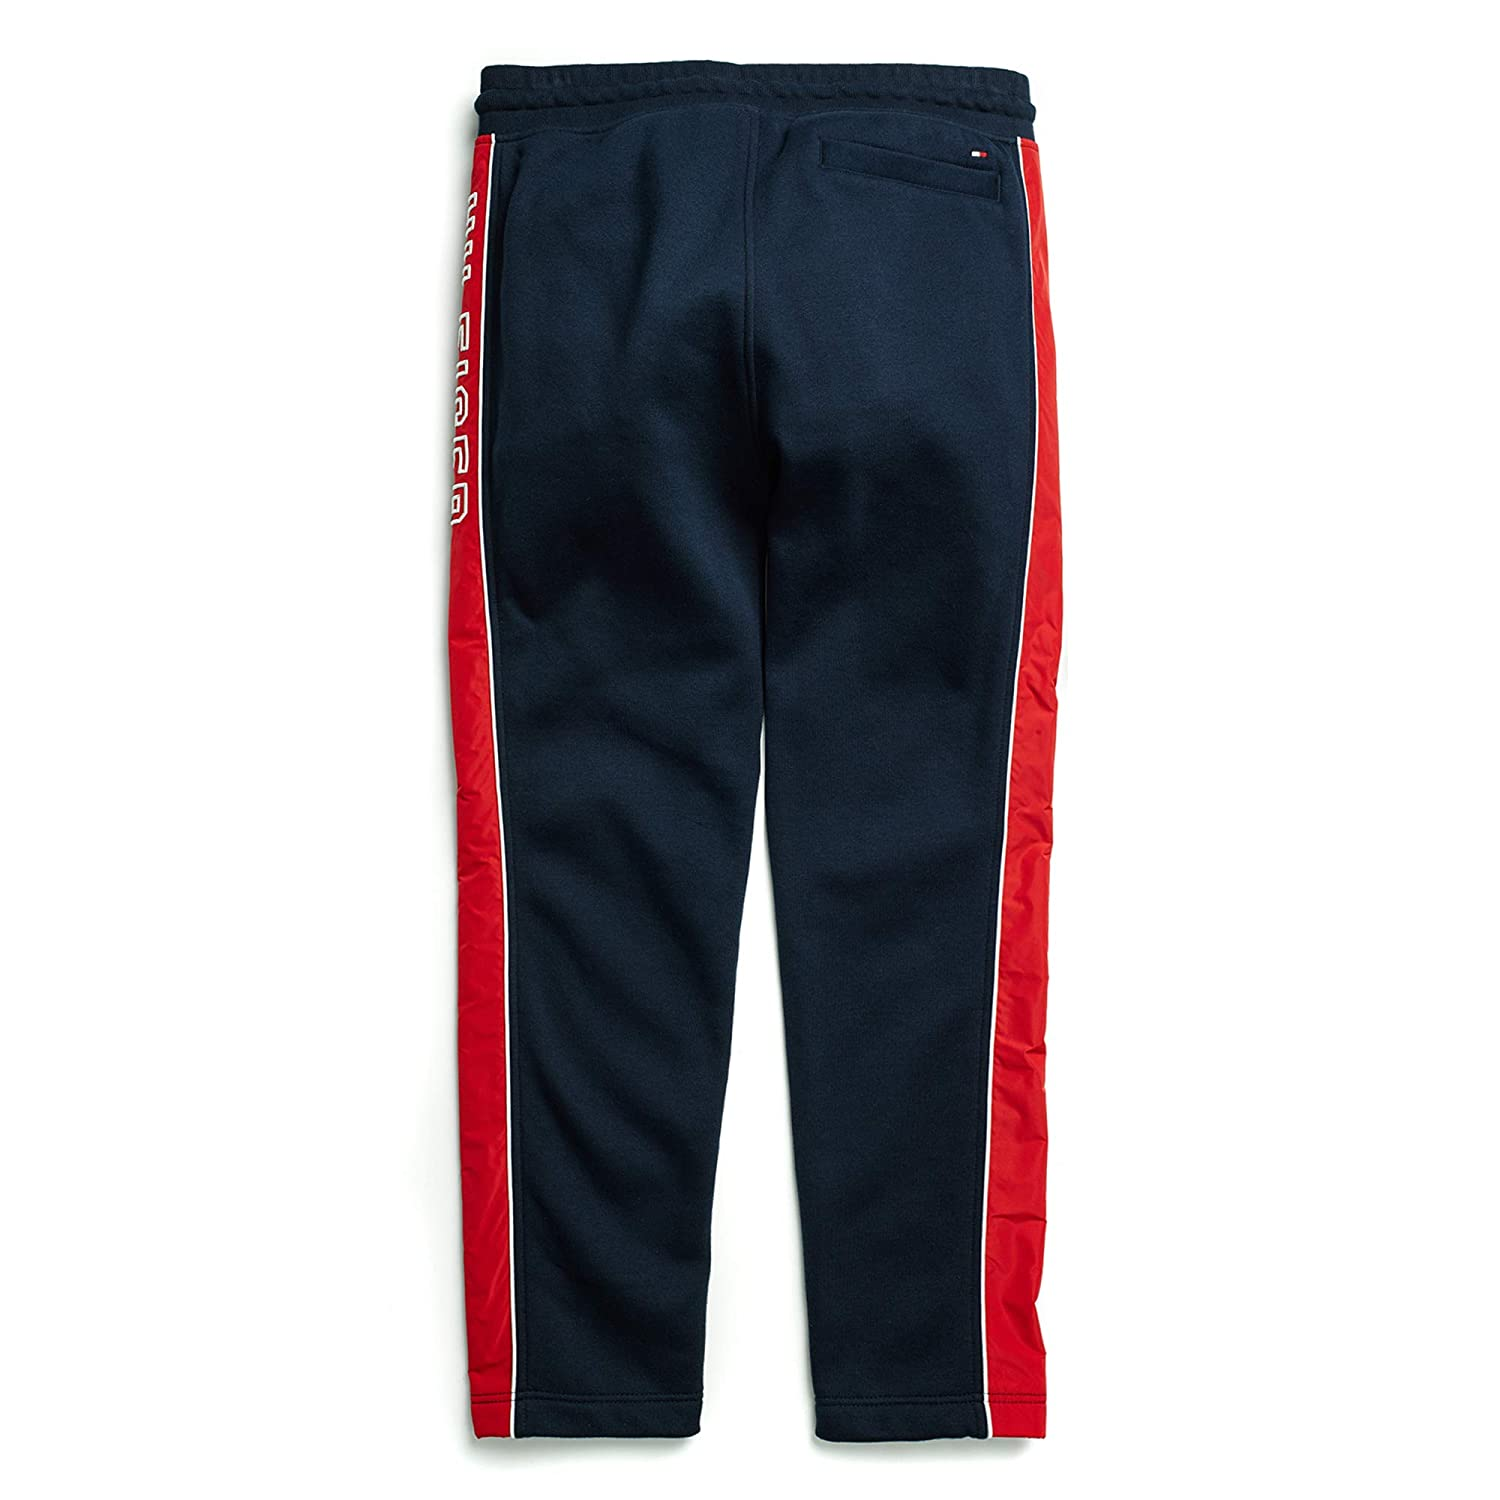 Tommy Hilfiger Mens Adaptive Sweatpants with Pull Up Loops Sweatpants